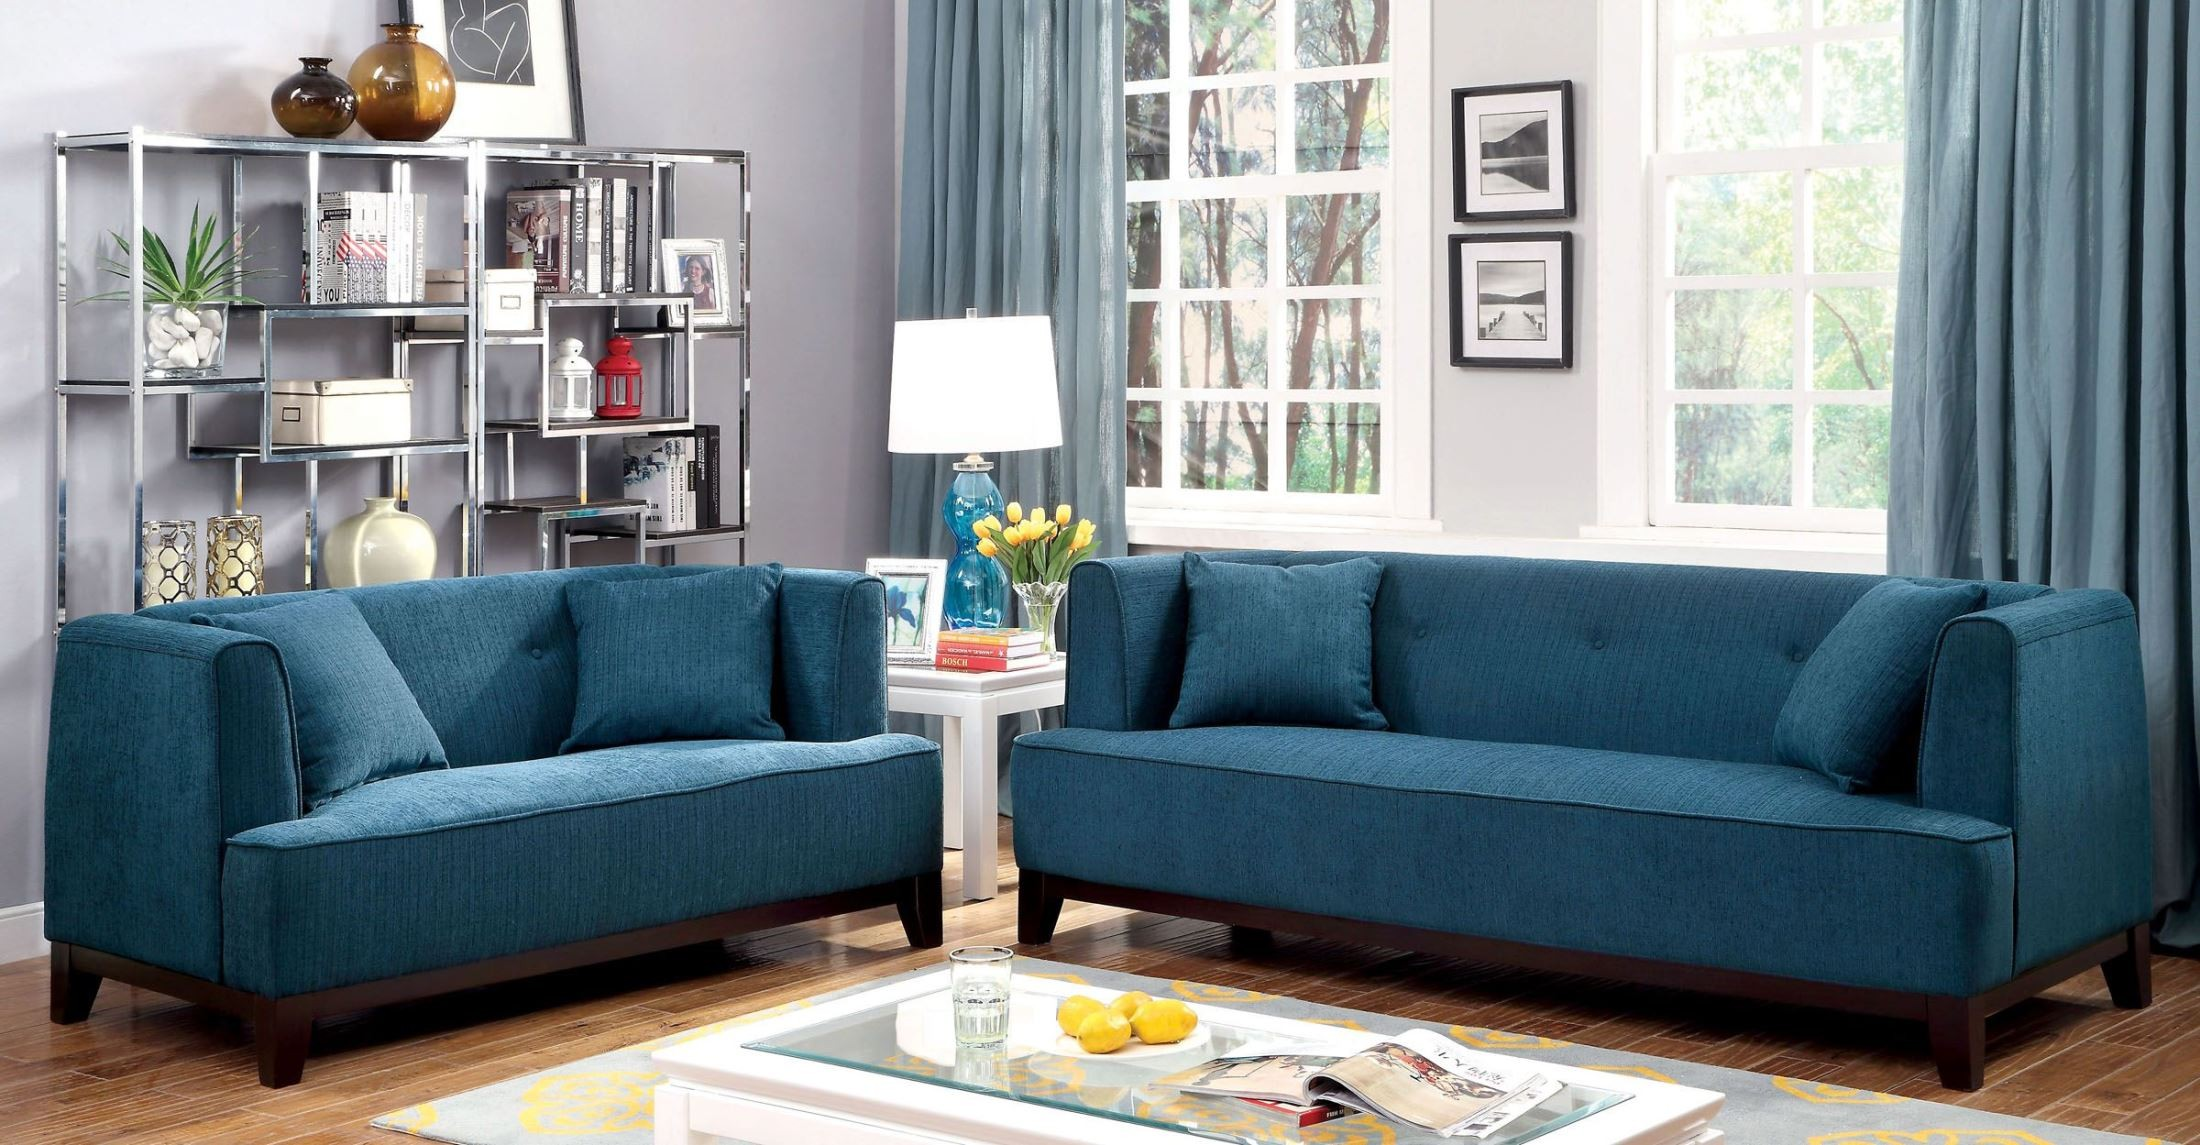 Sofia dark teal living room set from furniture of america for Furniture of america living room collections